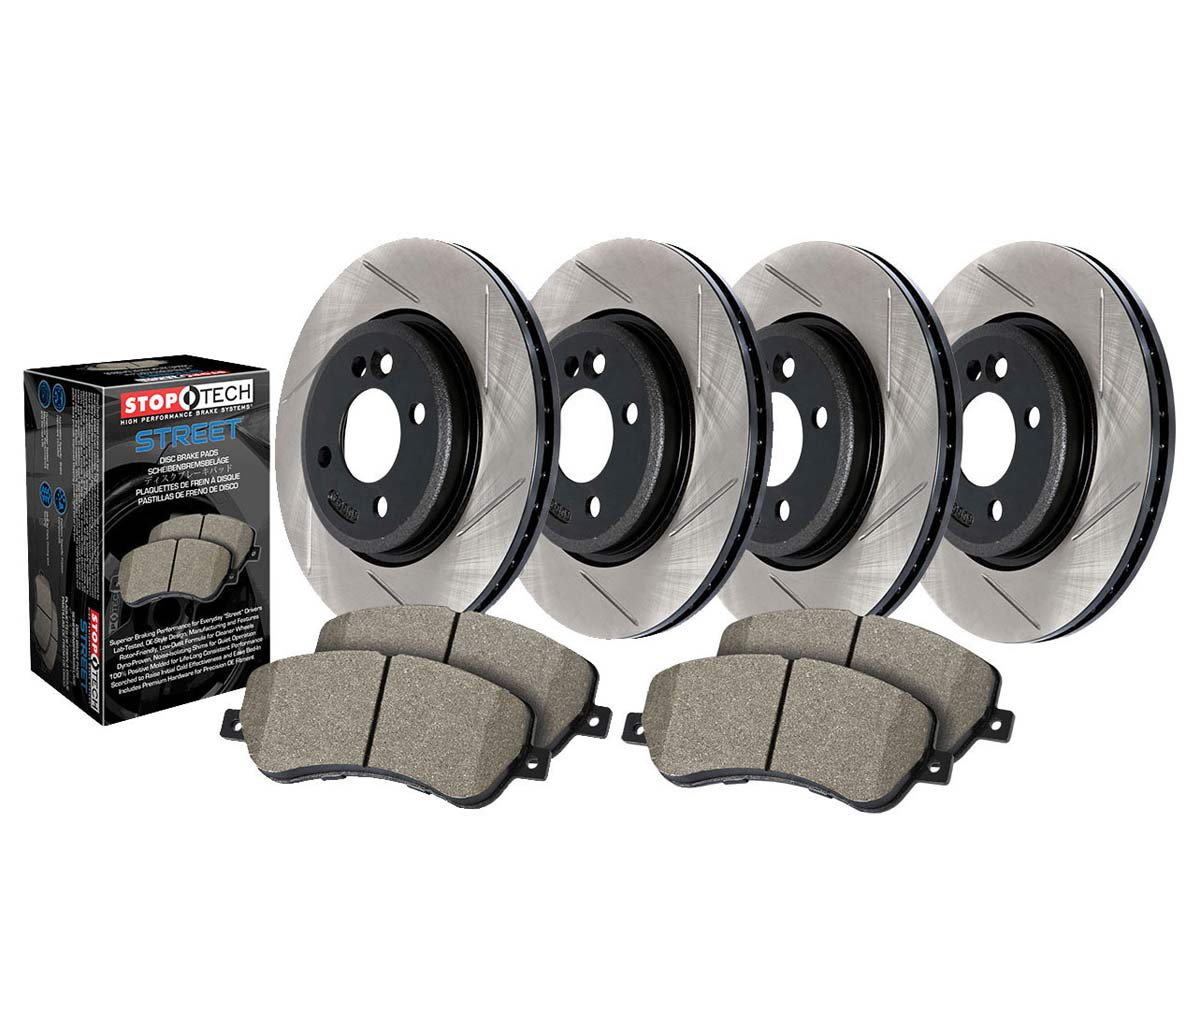 StopTech 934.42067 Street Axle Pack